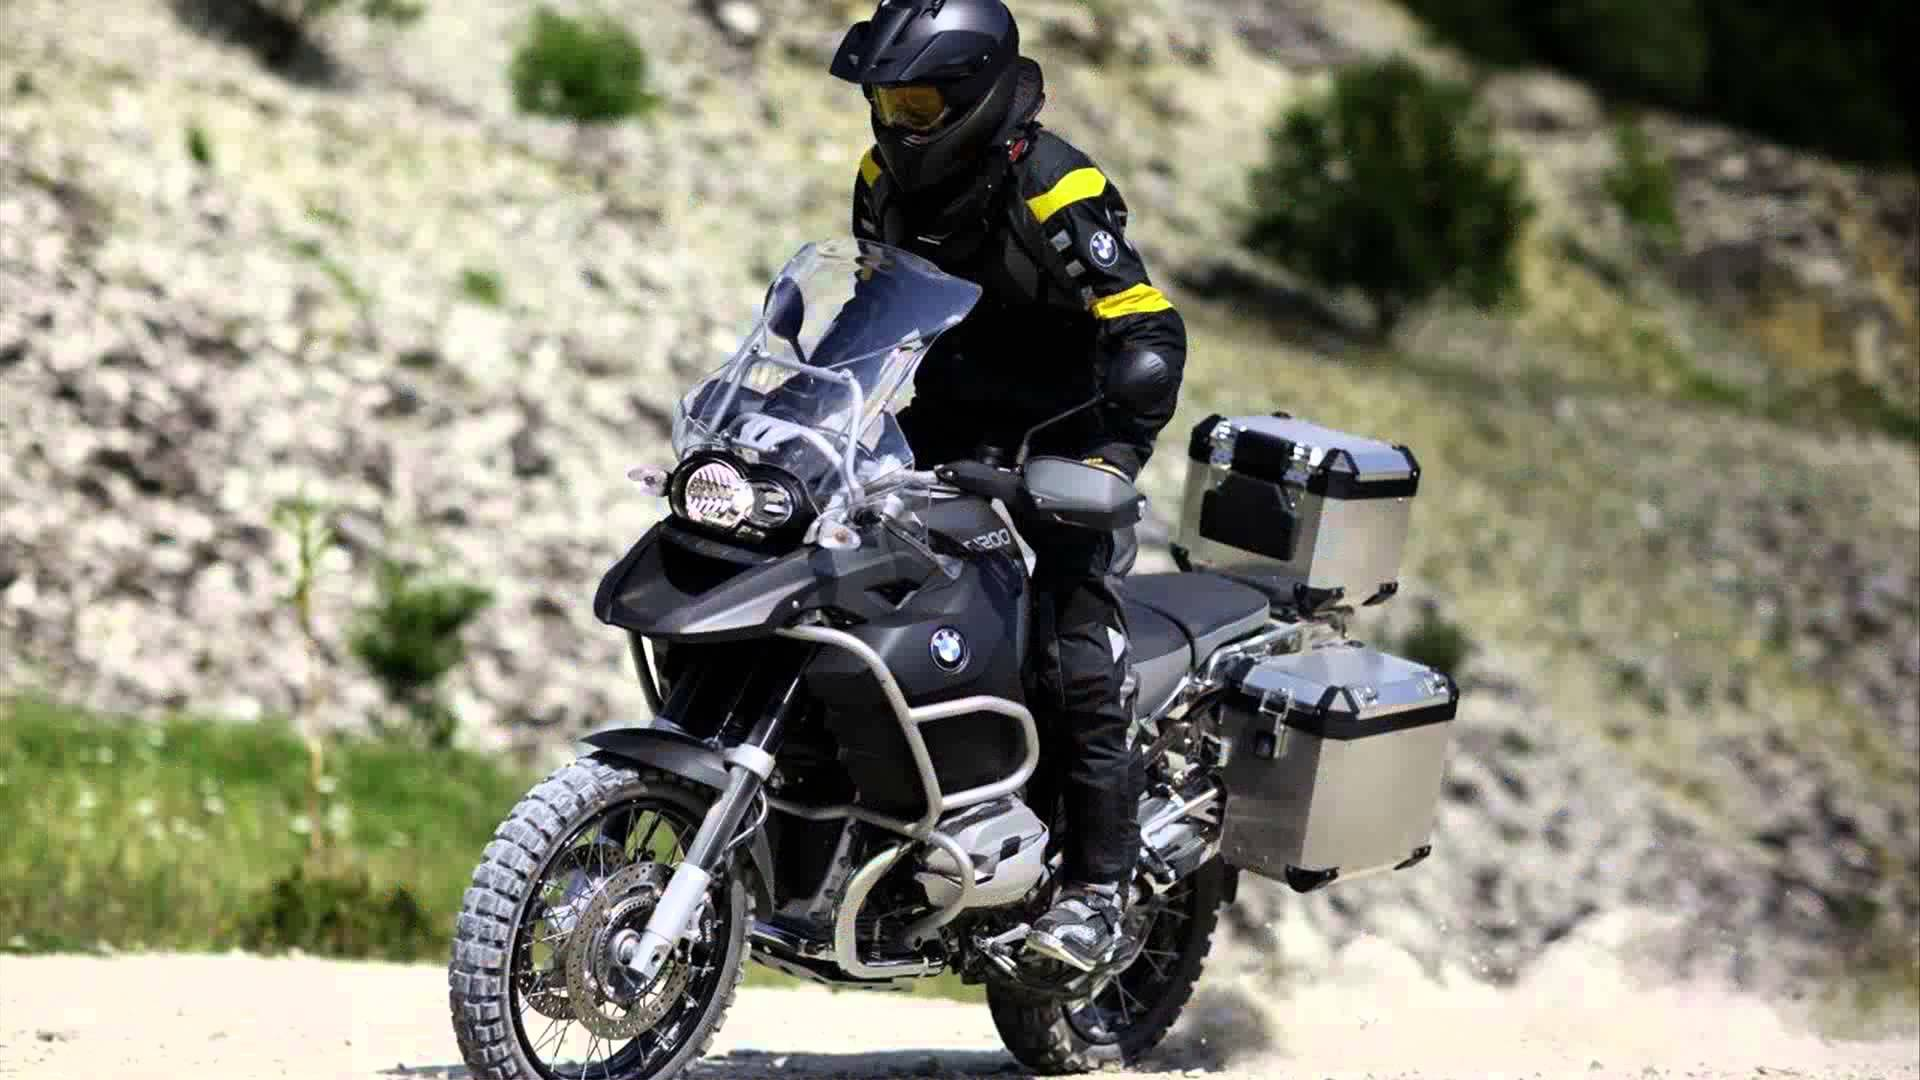 BMW R1200GS Adventure Triple Black 2013 images #8621